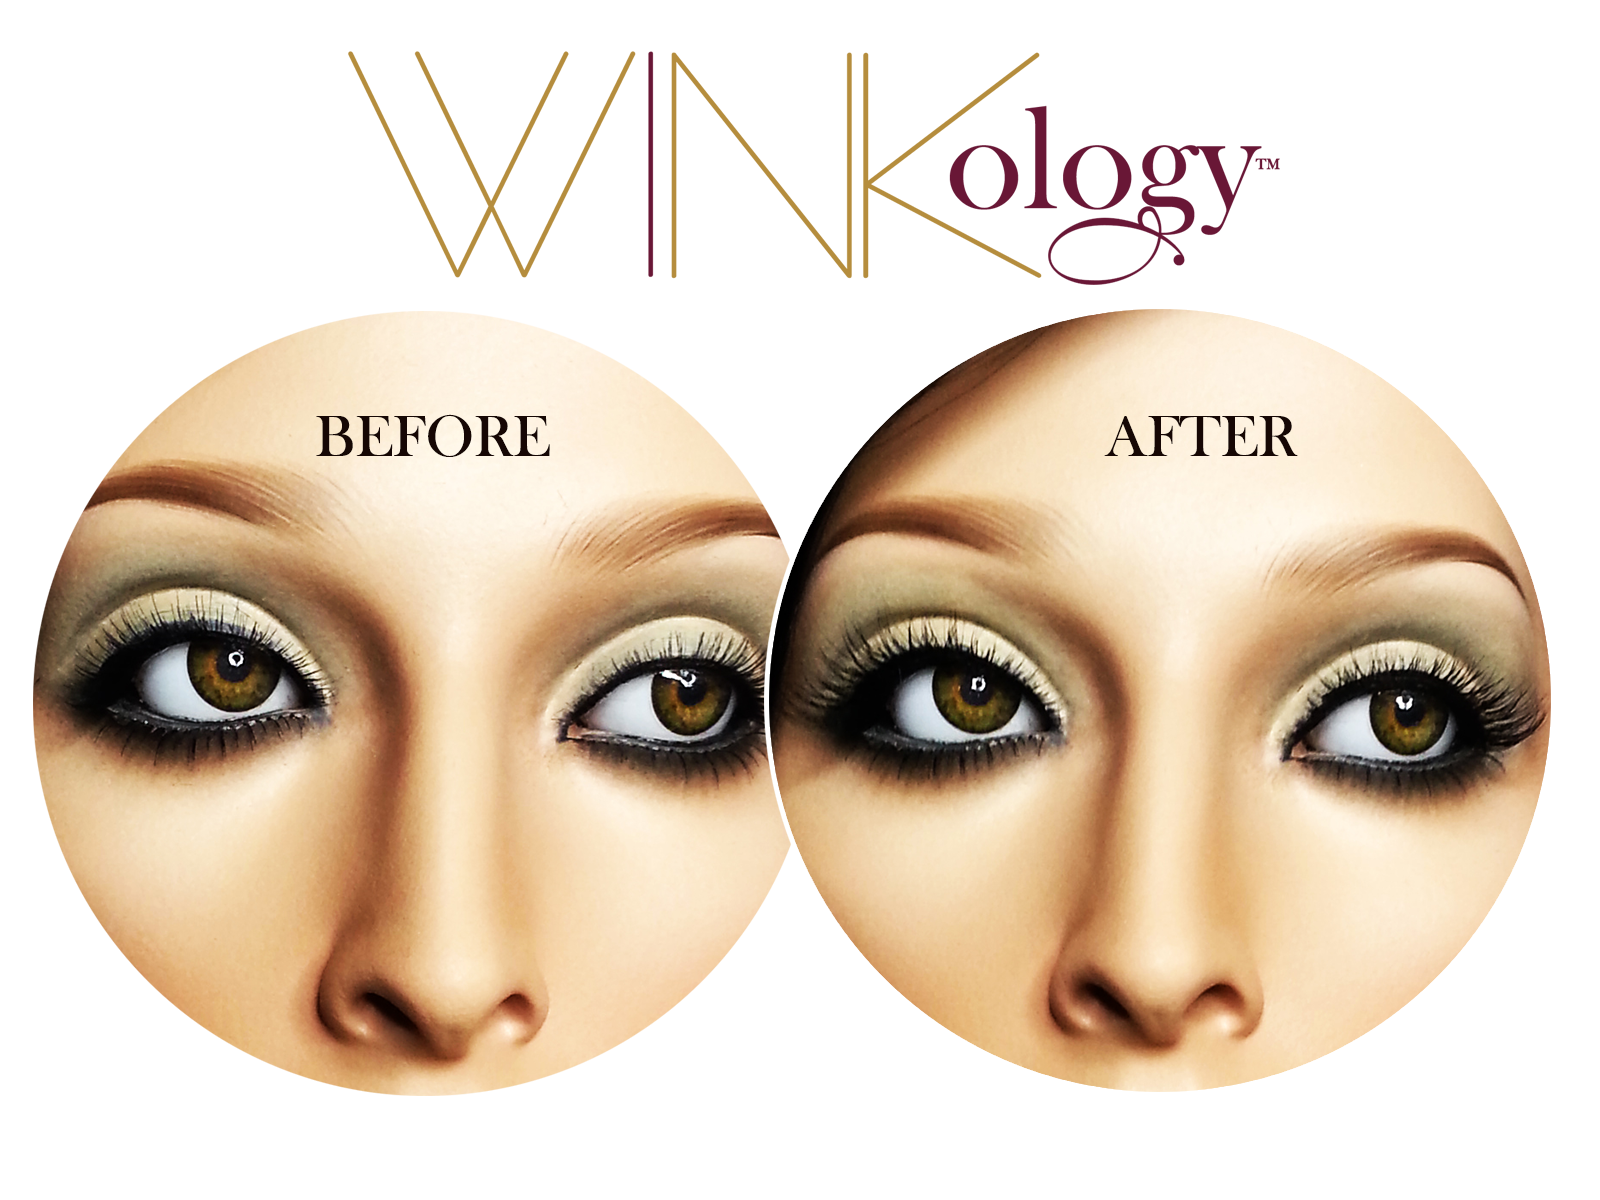 Winkology Lashes Before & After Shot